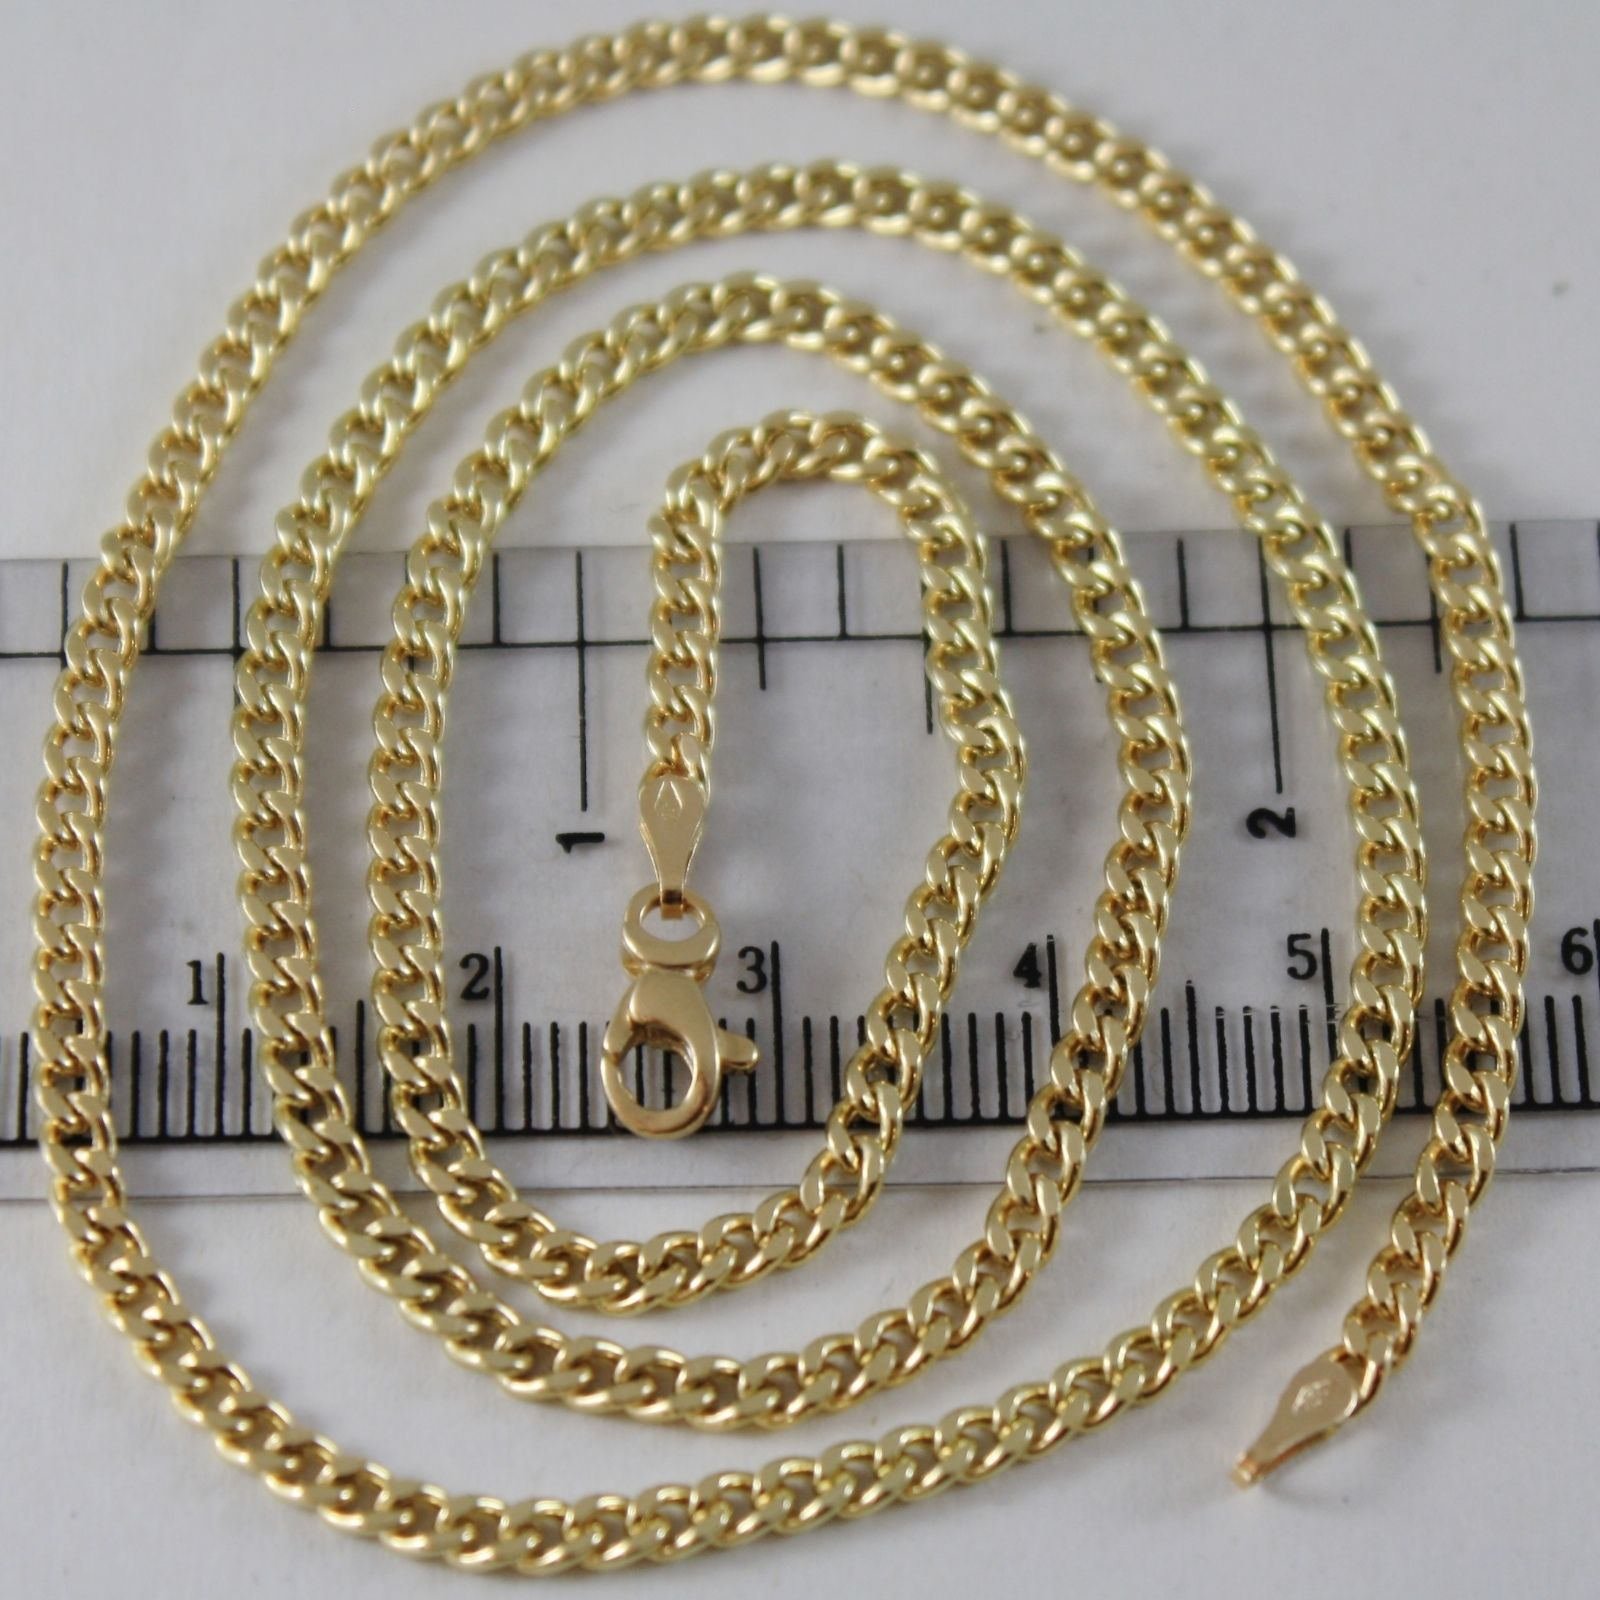 18K YELLOW GOLD CHAIN LITTLE GOURMETTE MESH 2.5 MM, 23.60 INCHES MADE IN ITALY